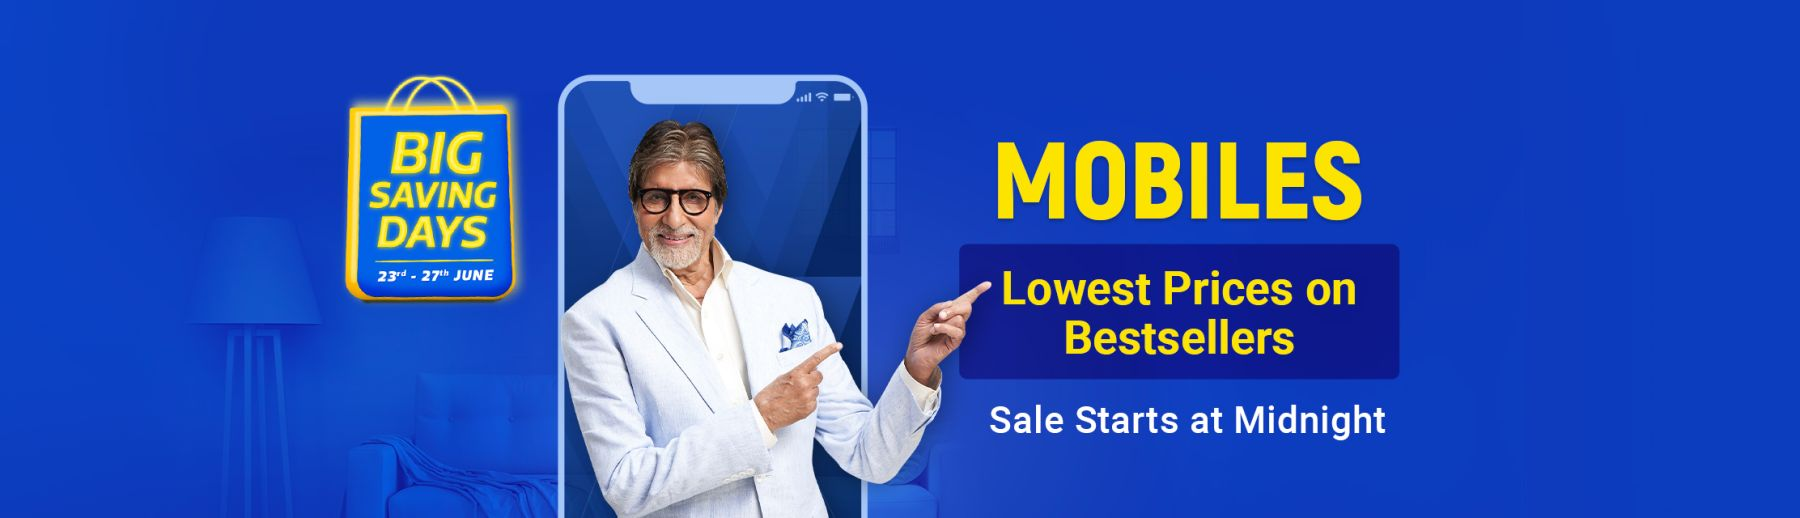 Flipkart Big Saving Days | 23-27 June 2020